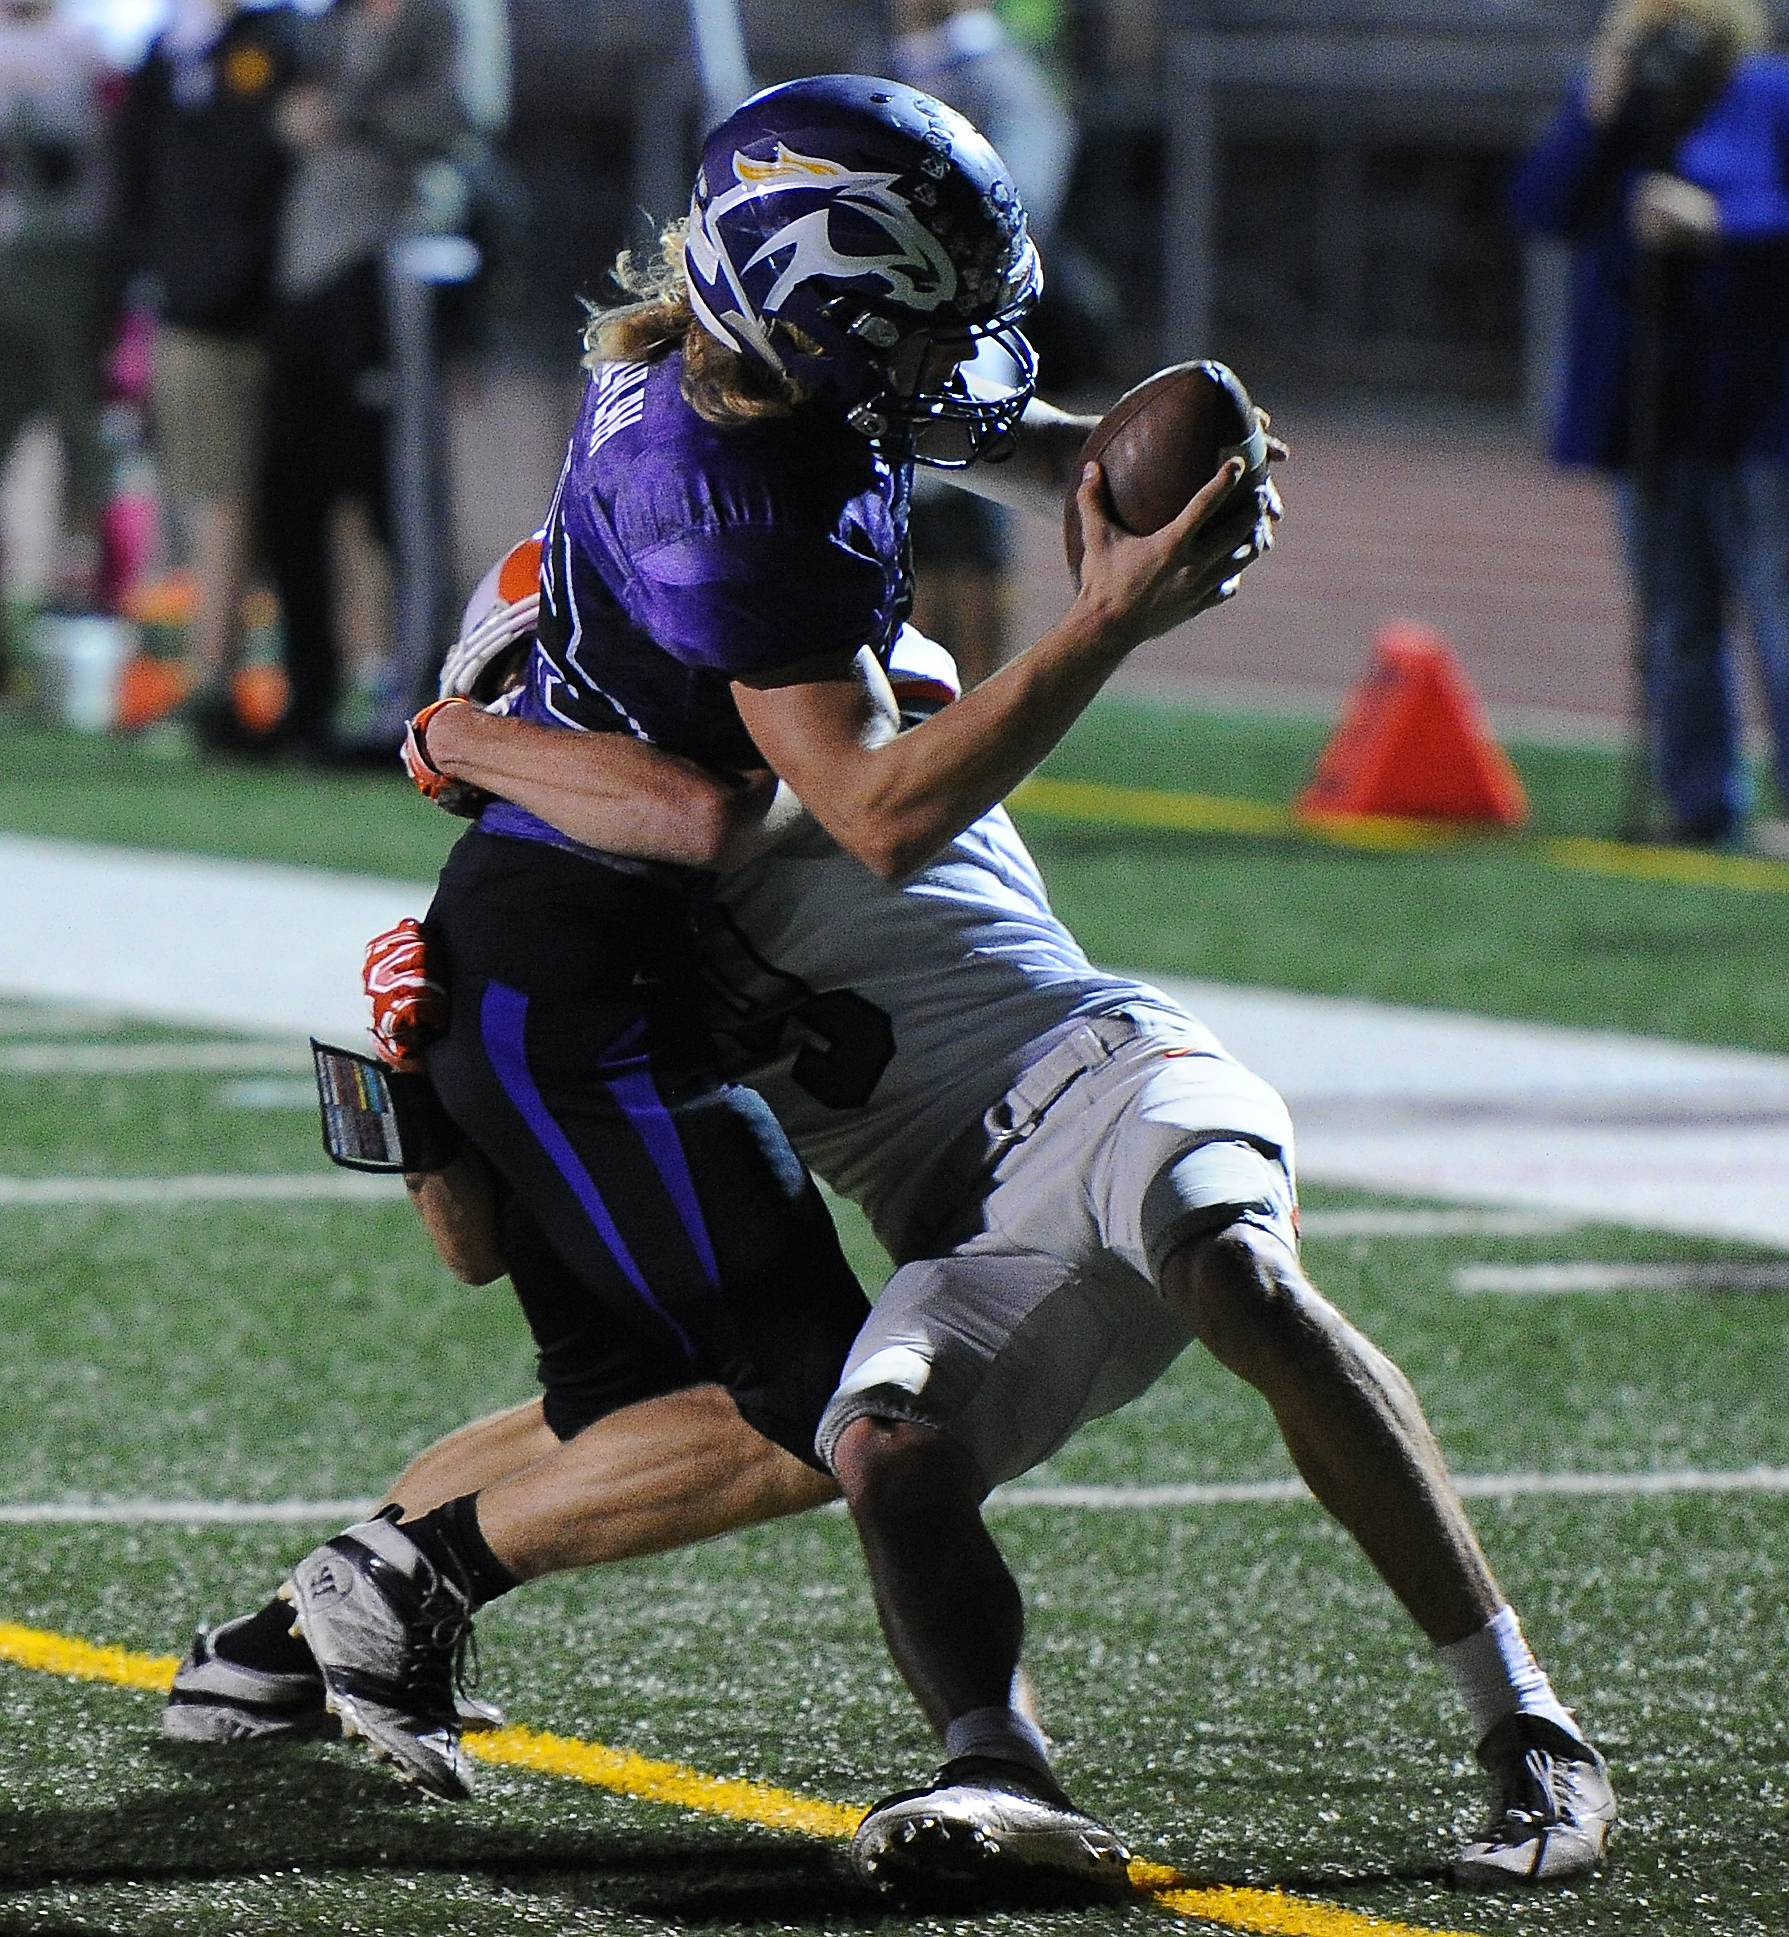 Rolling Meadows' Tim Szylak tries to score a touchdown but Hersey's Zakary Karman stops him short of the goal line in the first half at Rolling Meadows on Friday.